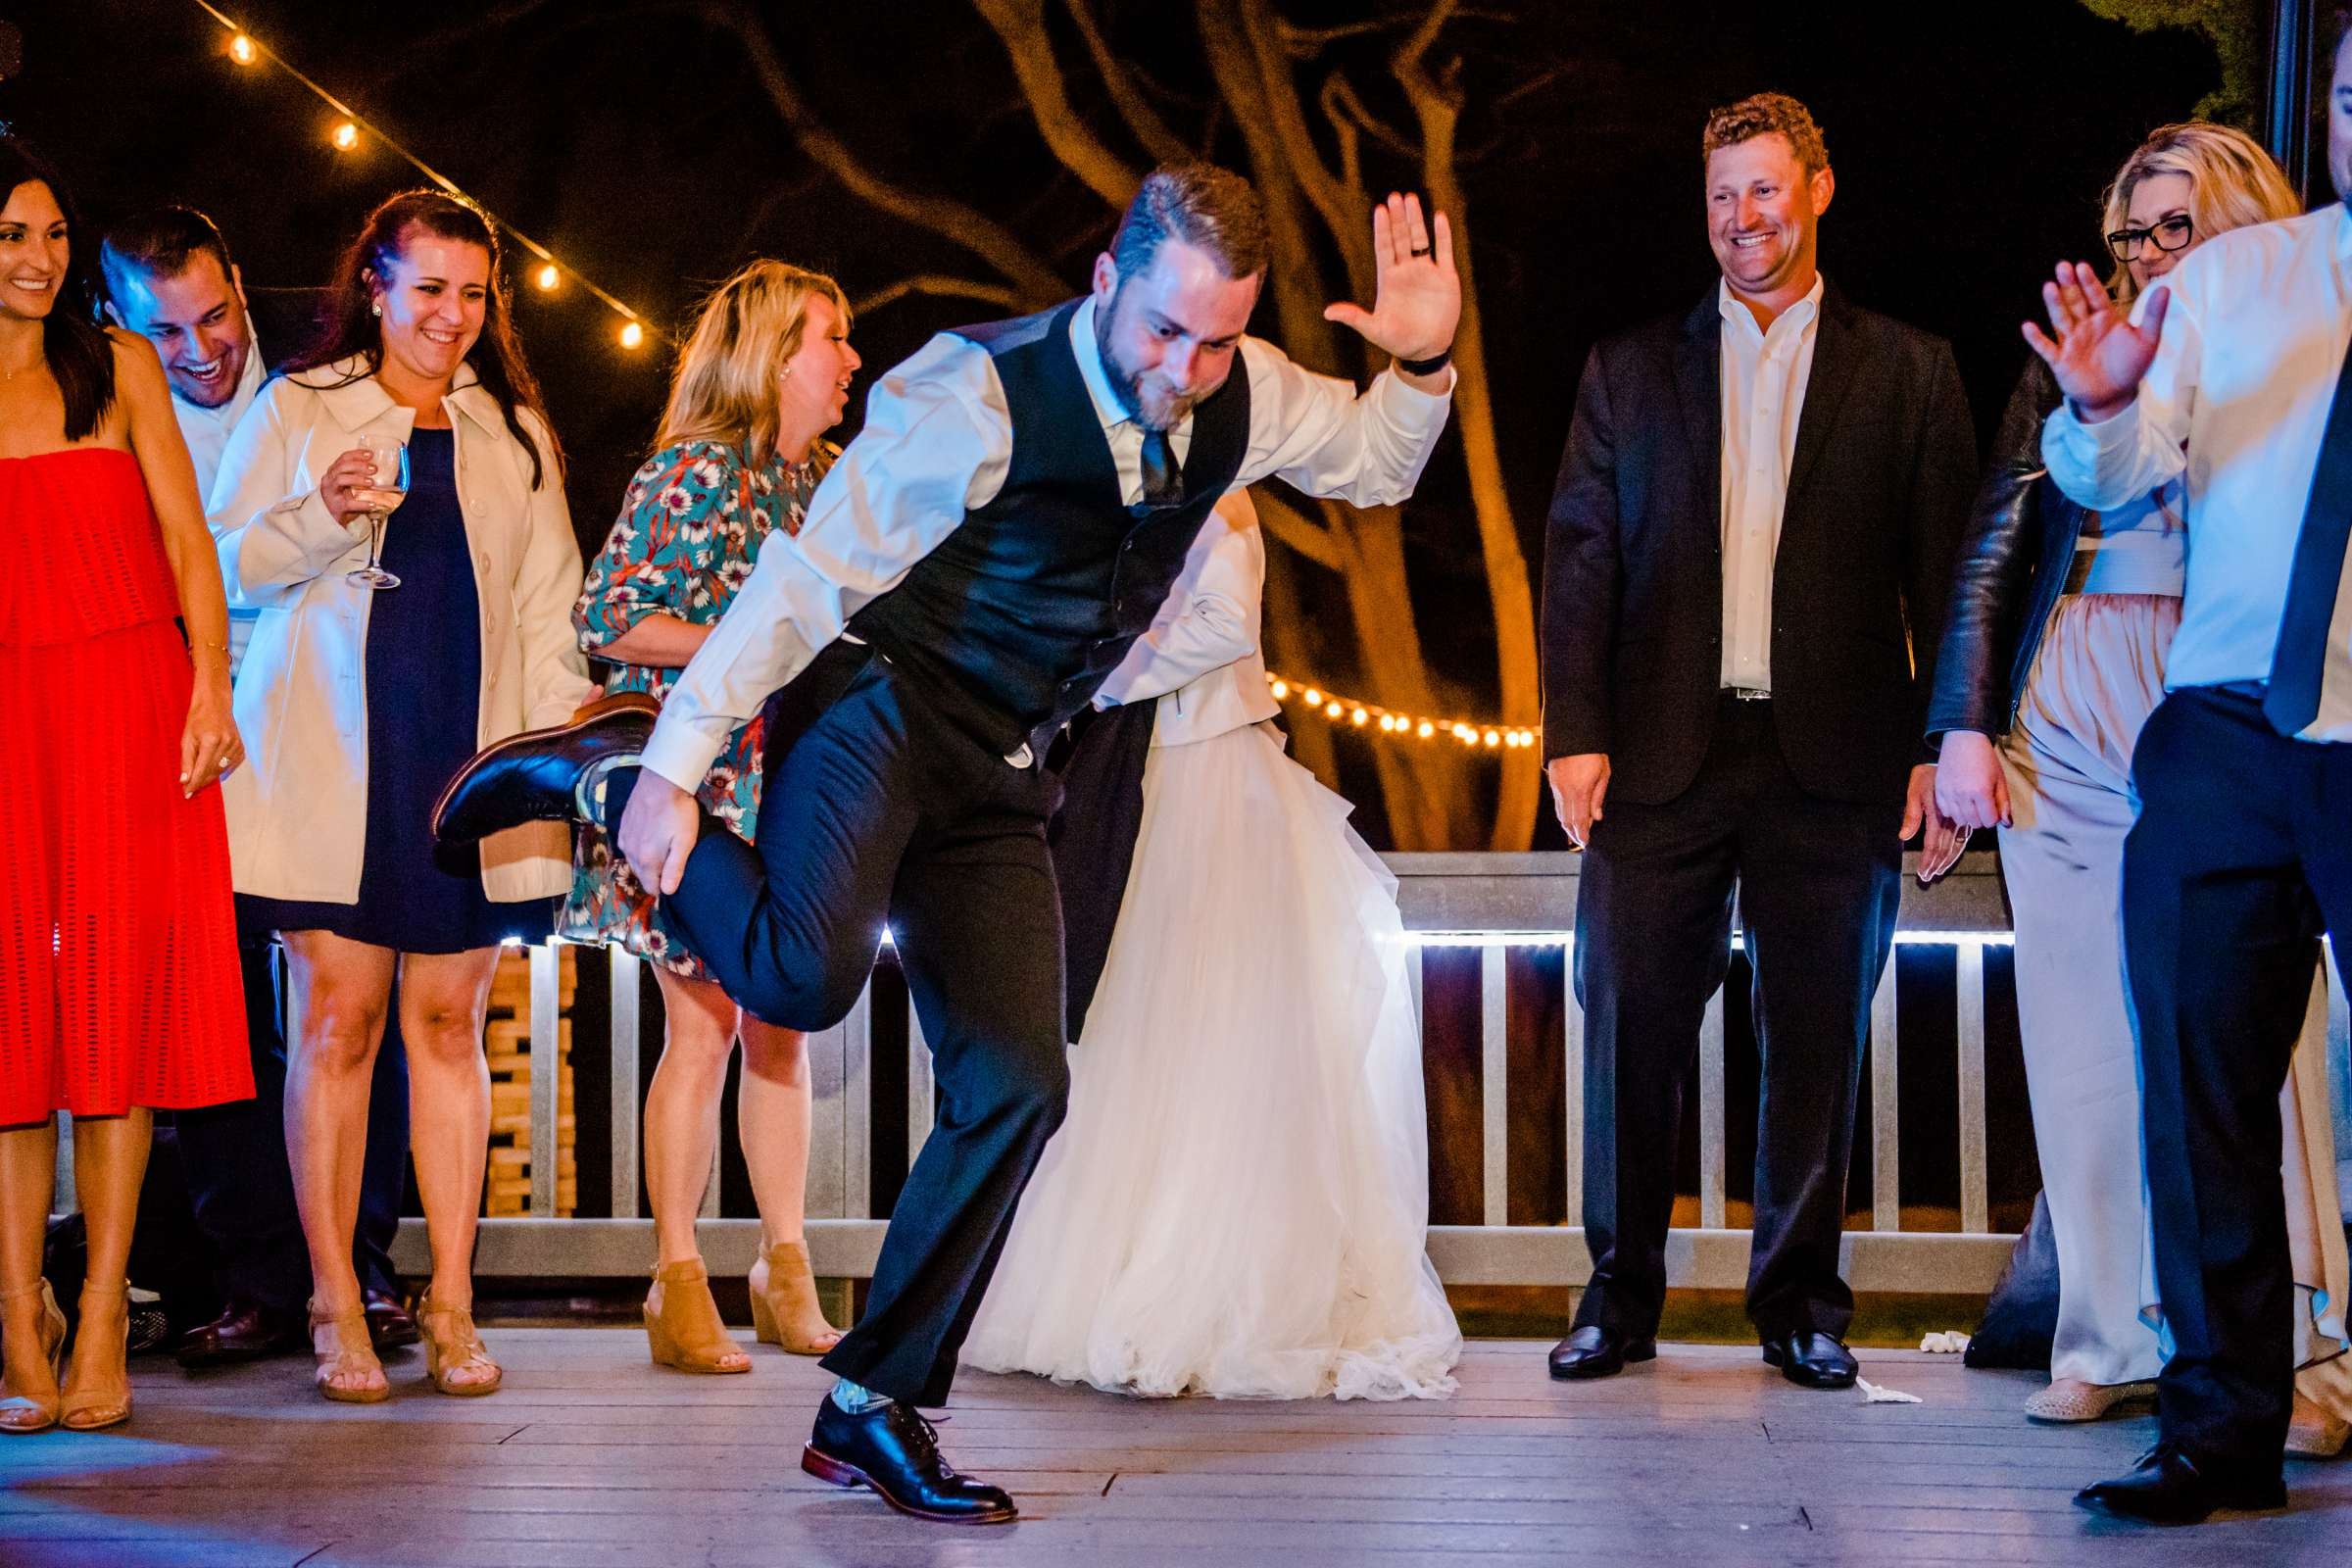 Martin Johnson House Wedding coordinated by Elements of Style, Anna and Travis Wedding Photo #315687 by True Photography